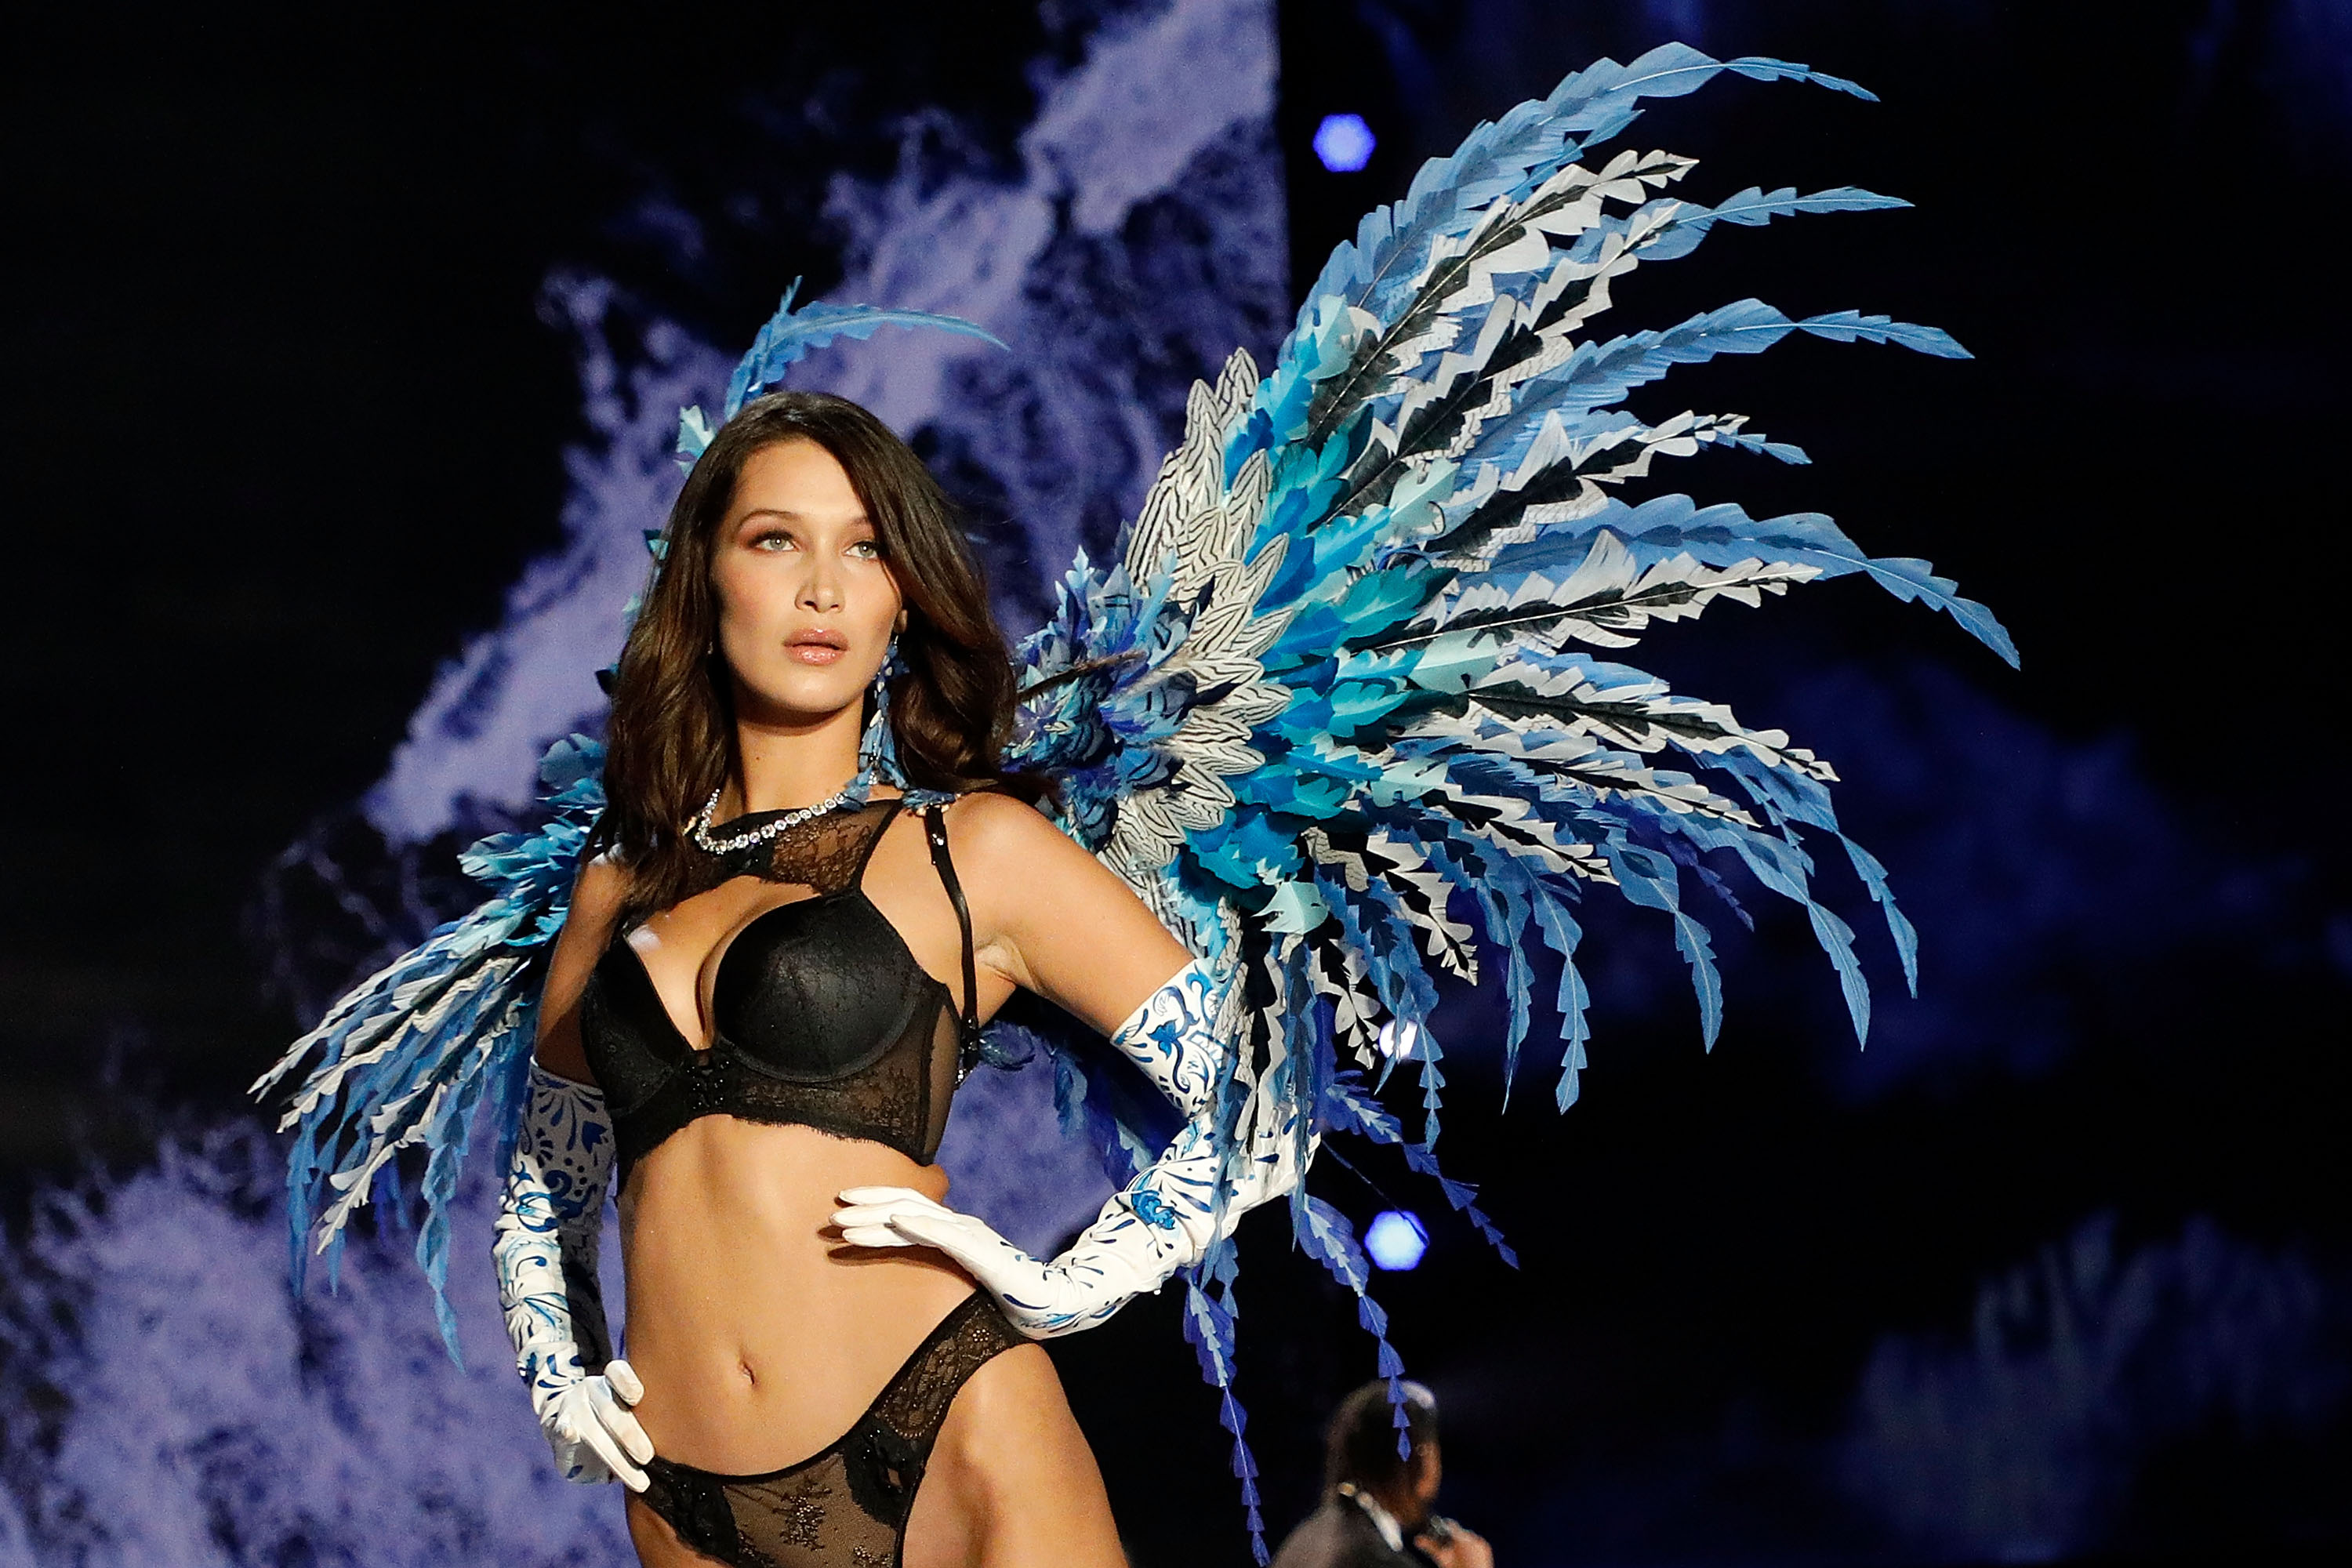 "<p>The sequins have settled on the runway extravaganza that was the <a href=""https://style.nine.com.au/2017/11/21/01/10/victorias-secret-2017-shanghai"" target=""_blank"" draggable=""false"">2017 Victoria's Secrets fashion show</a>.</p> <p>Shanghai played host to the Olympics of fashion that saw 60 top models slip into sky-high stilettos and diamond-encrusted wings to strut their stuff for the world's leading lingerie company.<br /> <br /> Despite the dire headlines in the days leading up to the show, <a href=""https://style.nine.com.au/2017/11/21/09/36/victorias-secret-2017-models-angels-fashion"" target=""_blank"" draggable=""false"">owing to the absence of Gigi Hadid and musical actKaty Perry</a>, the mood of this year's show was buoyant and bold.</p> <p>Harry Styles and Miguel sang and Balmain's creative director Olivier Rousteing designed wings for the likes of Bella Hadid, Taylor Hill and Jasmine Tookes.</p> <p>We have rounded up 15 of the hottest looks from the 2017 Victoria's Secret Fashion Show.</p>"